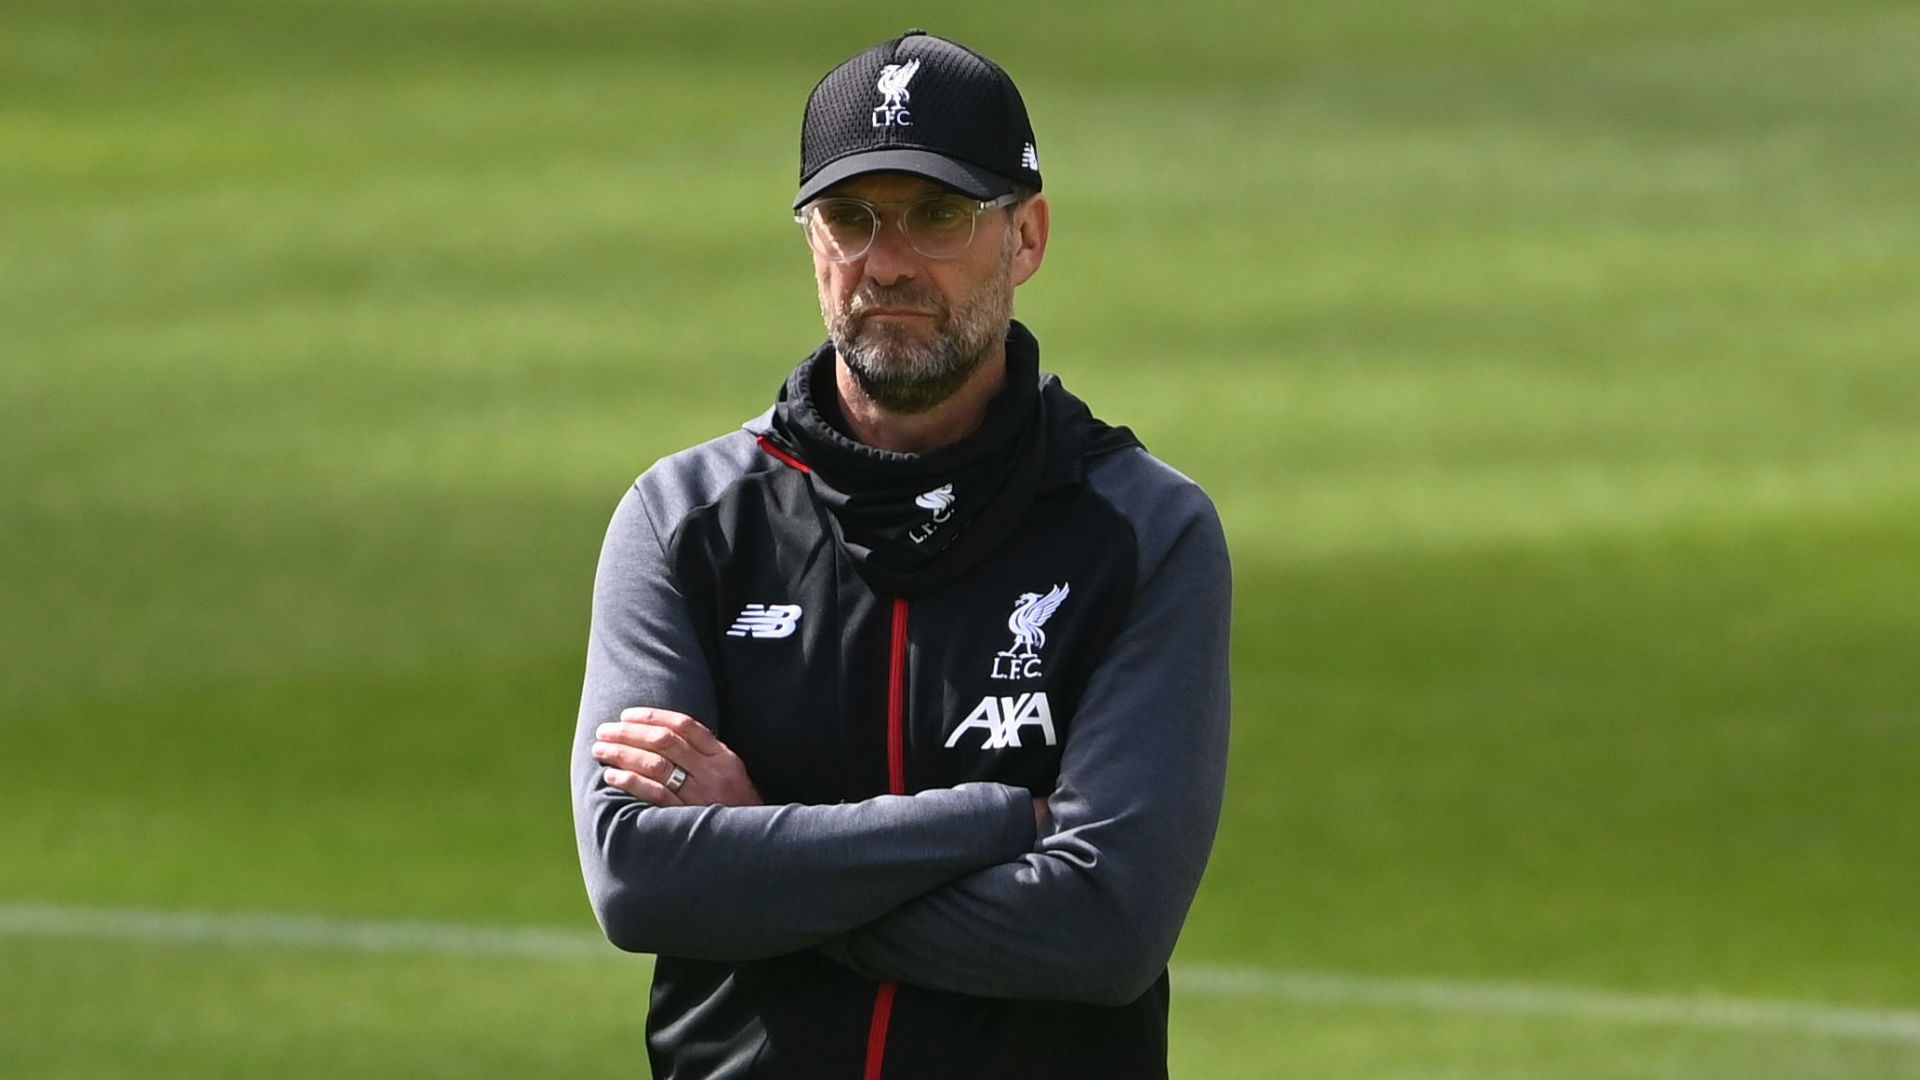 Klopp will keep rotating to cope with intensity and injuries